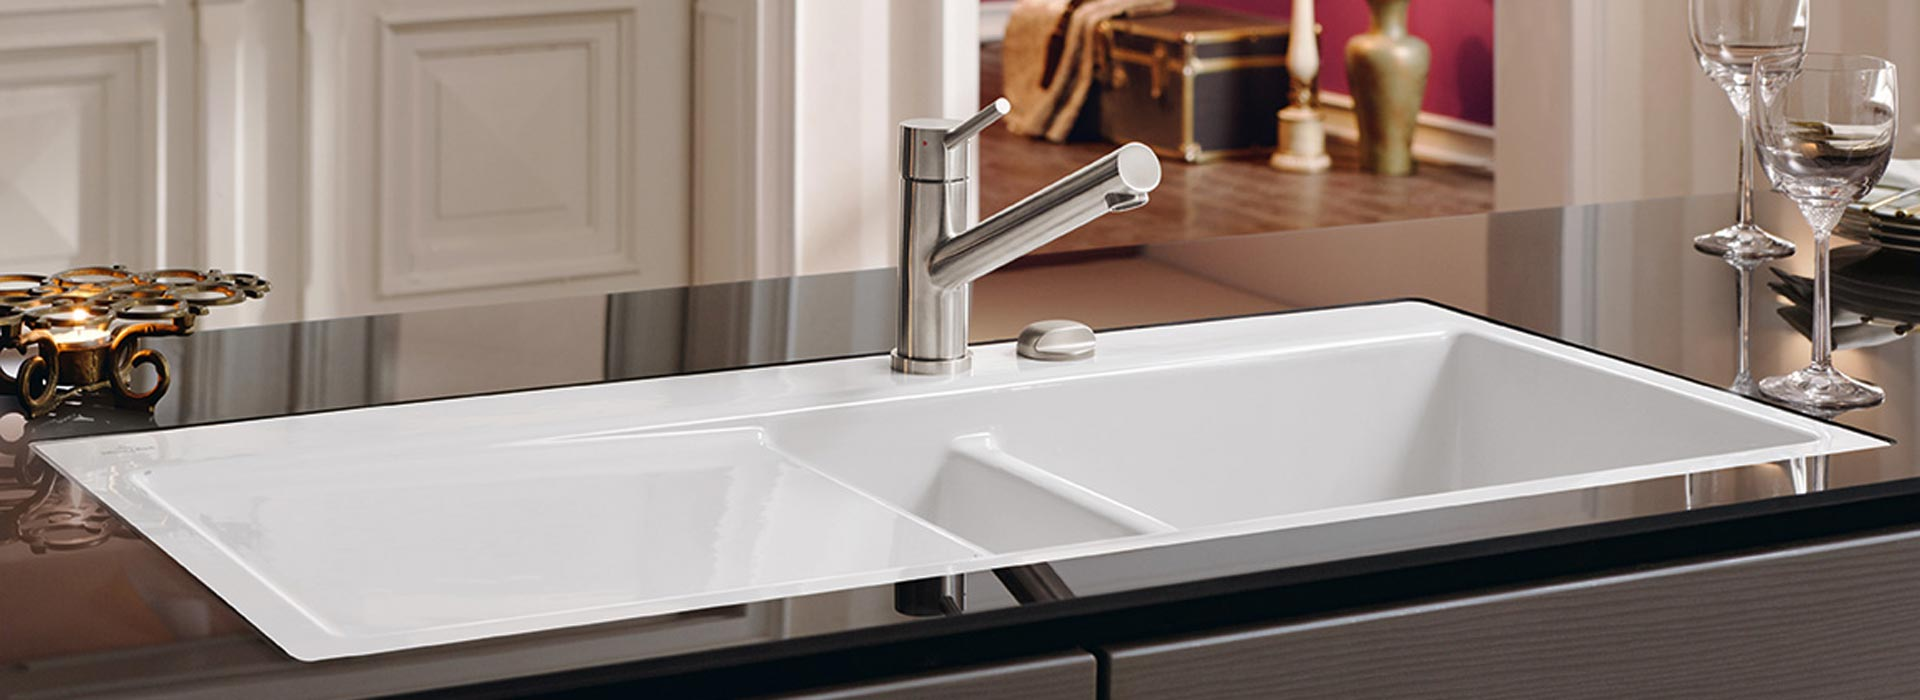 Villeroy and boch bathroom sink - Subway 60 Flat